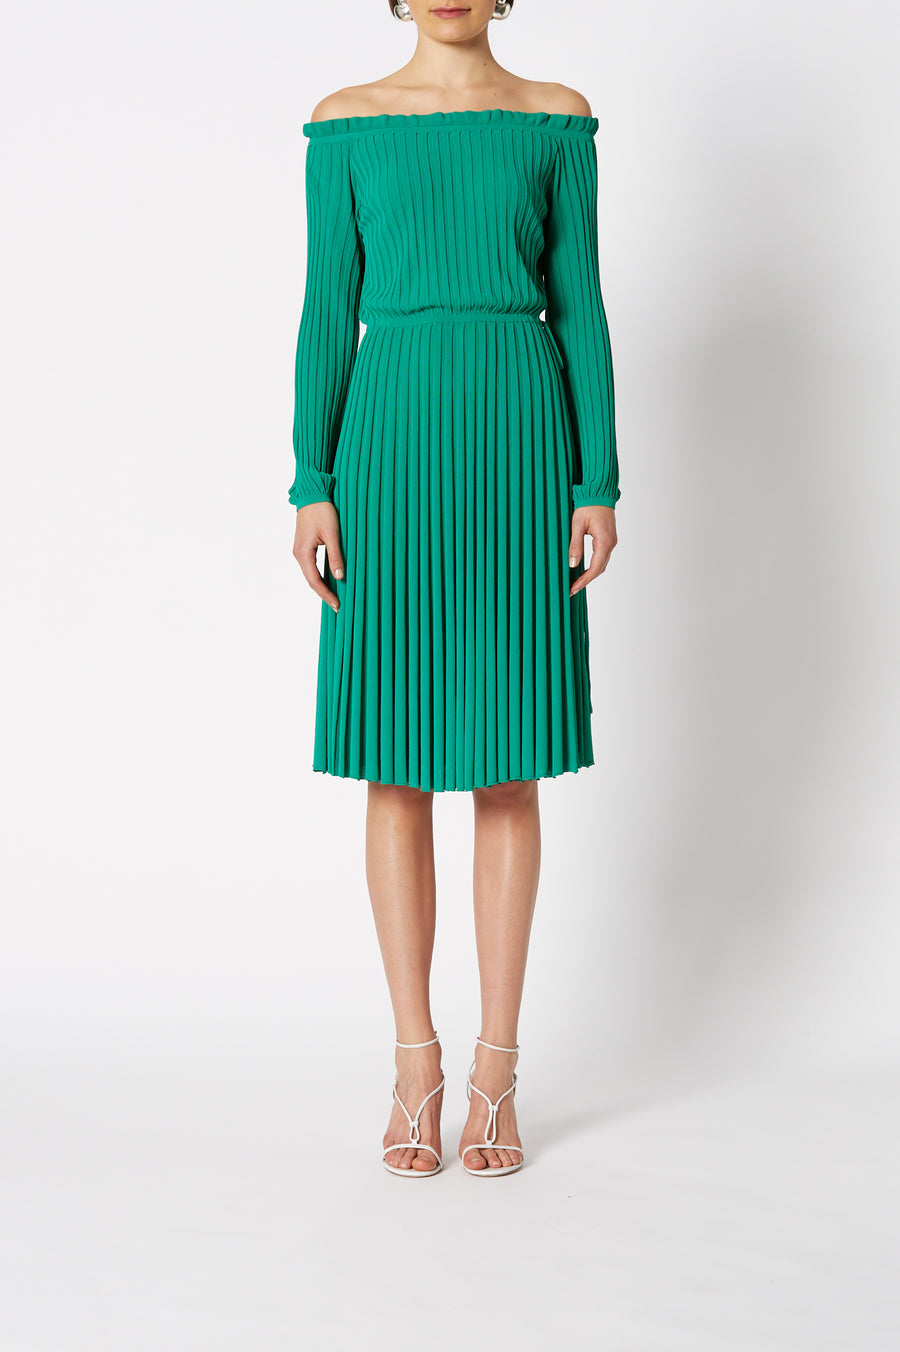 Pleated Rib Cold Shoulder Dress is a off the shoulder dress with a cinched in waistline, color verde